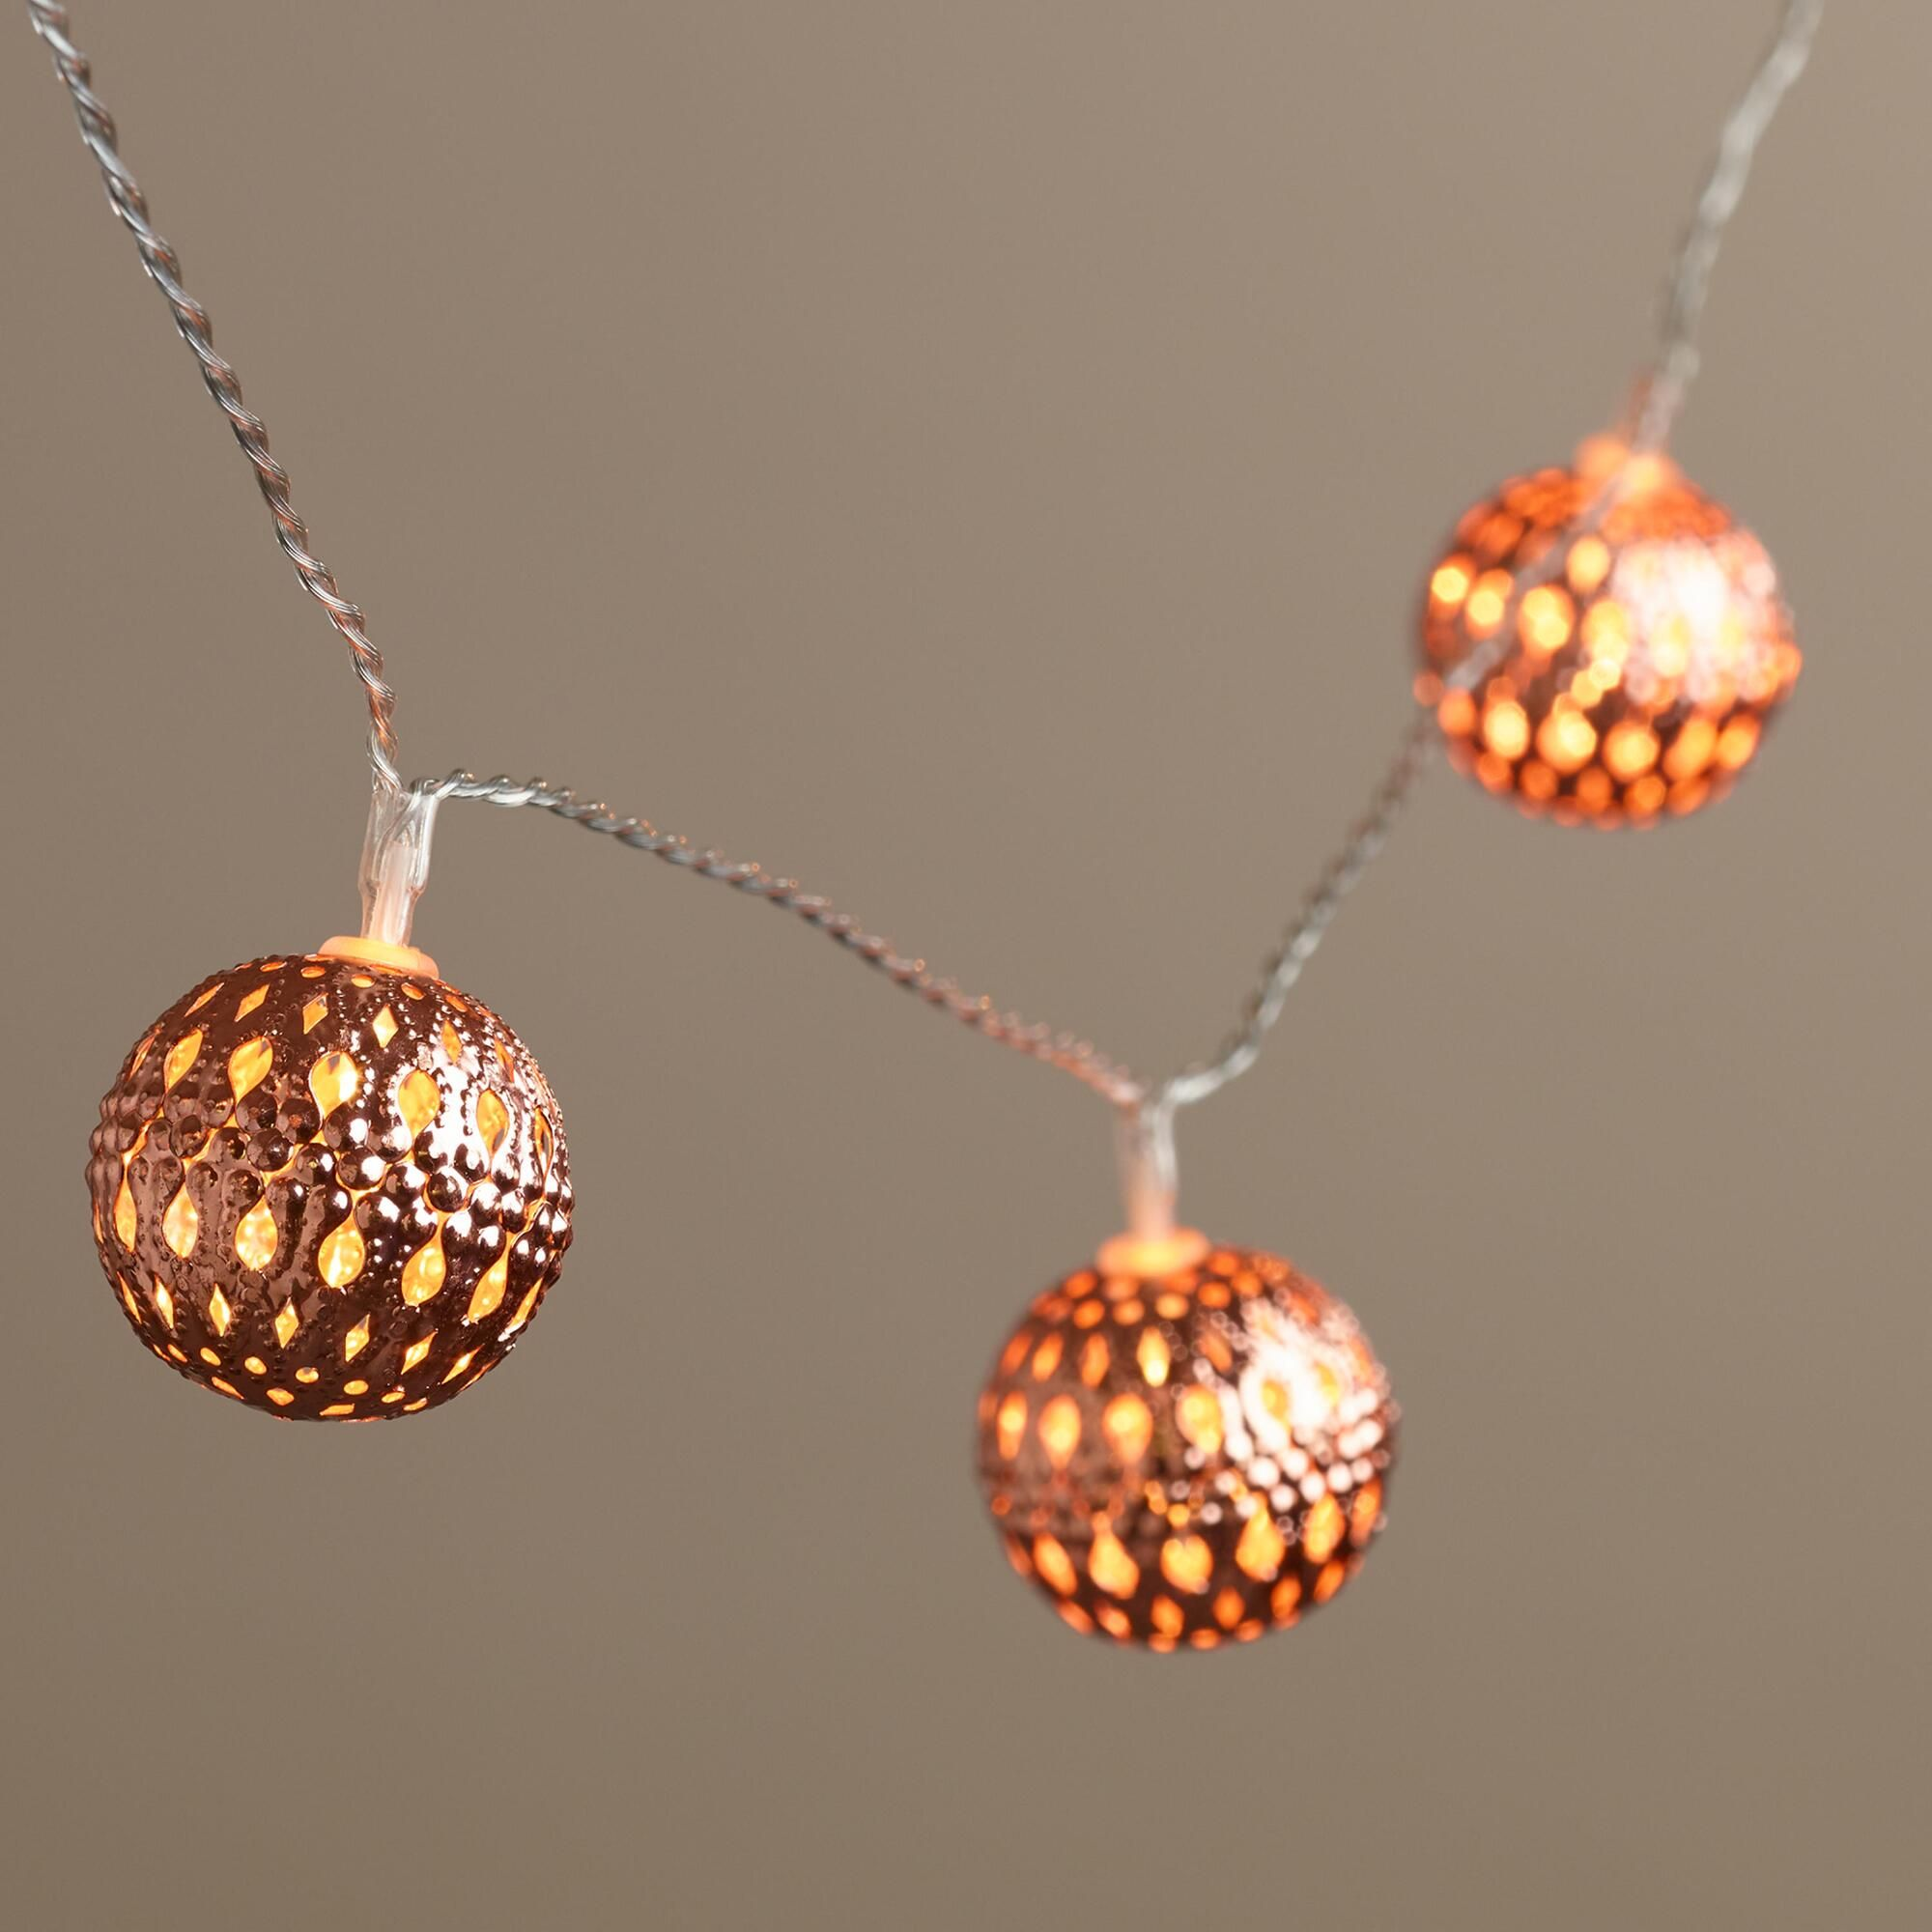 Copper orb led 10 bulb battery operated string lights battery copper orb led 10 bulb battery operated string lights mozeypictures Gallery